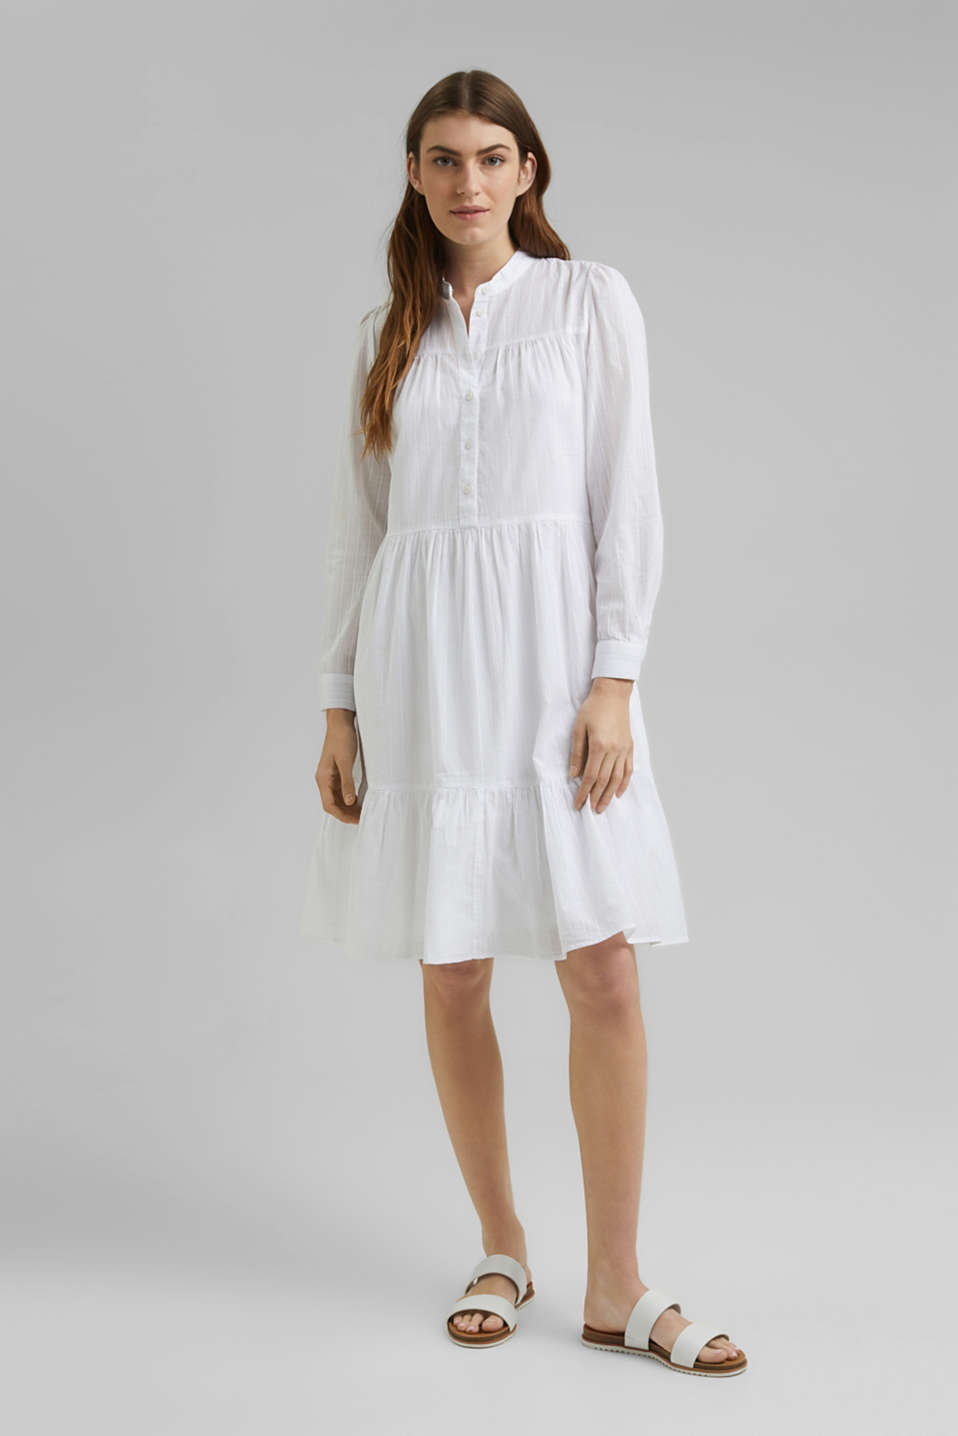 Esprit - Organic cotton shirt dress with flounces